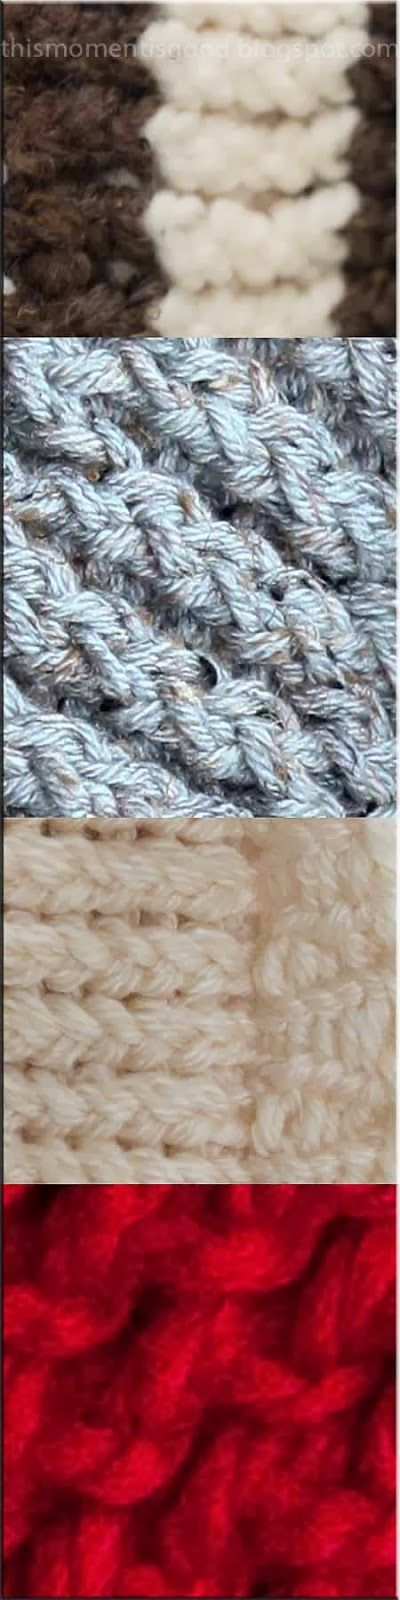 This Moment is Good...: LOOM KNITTING STITCH GUIDE